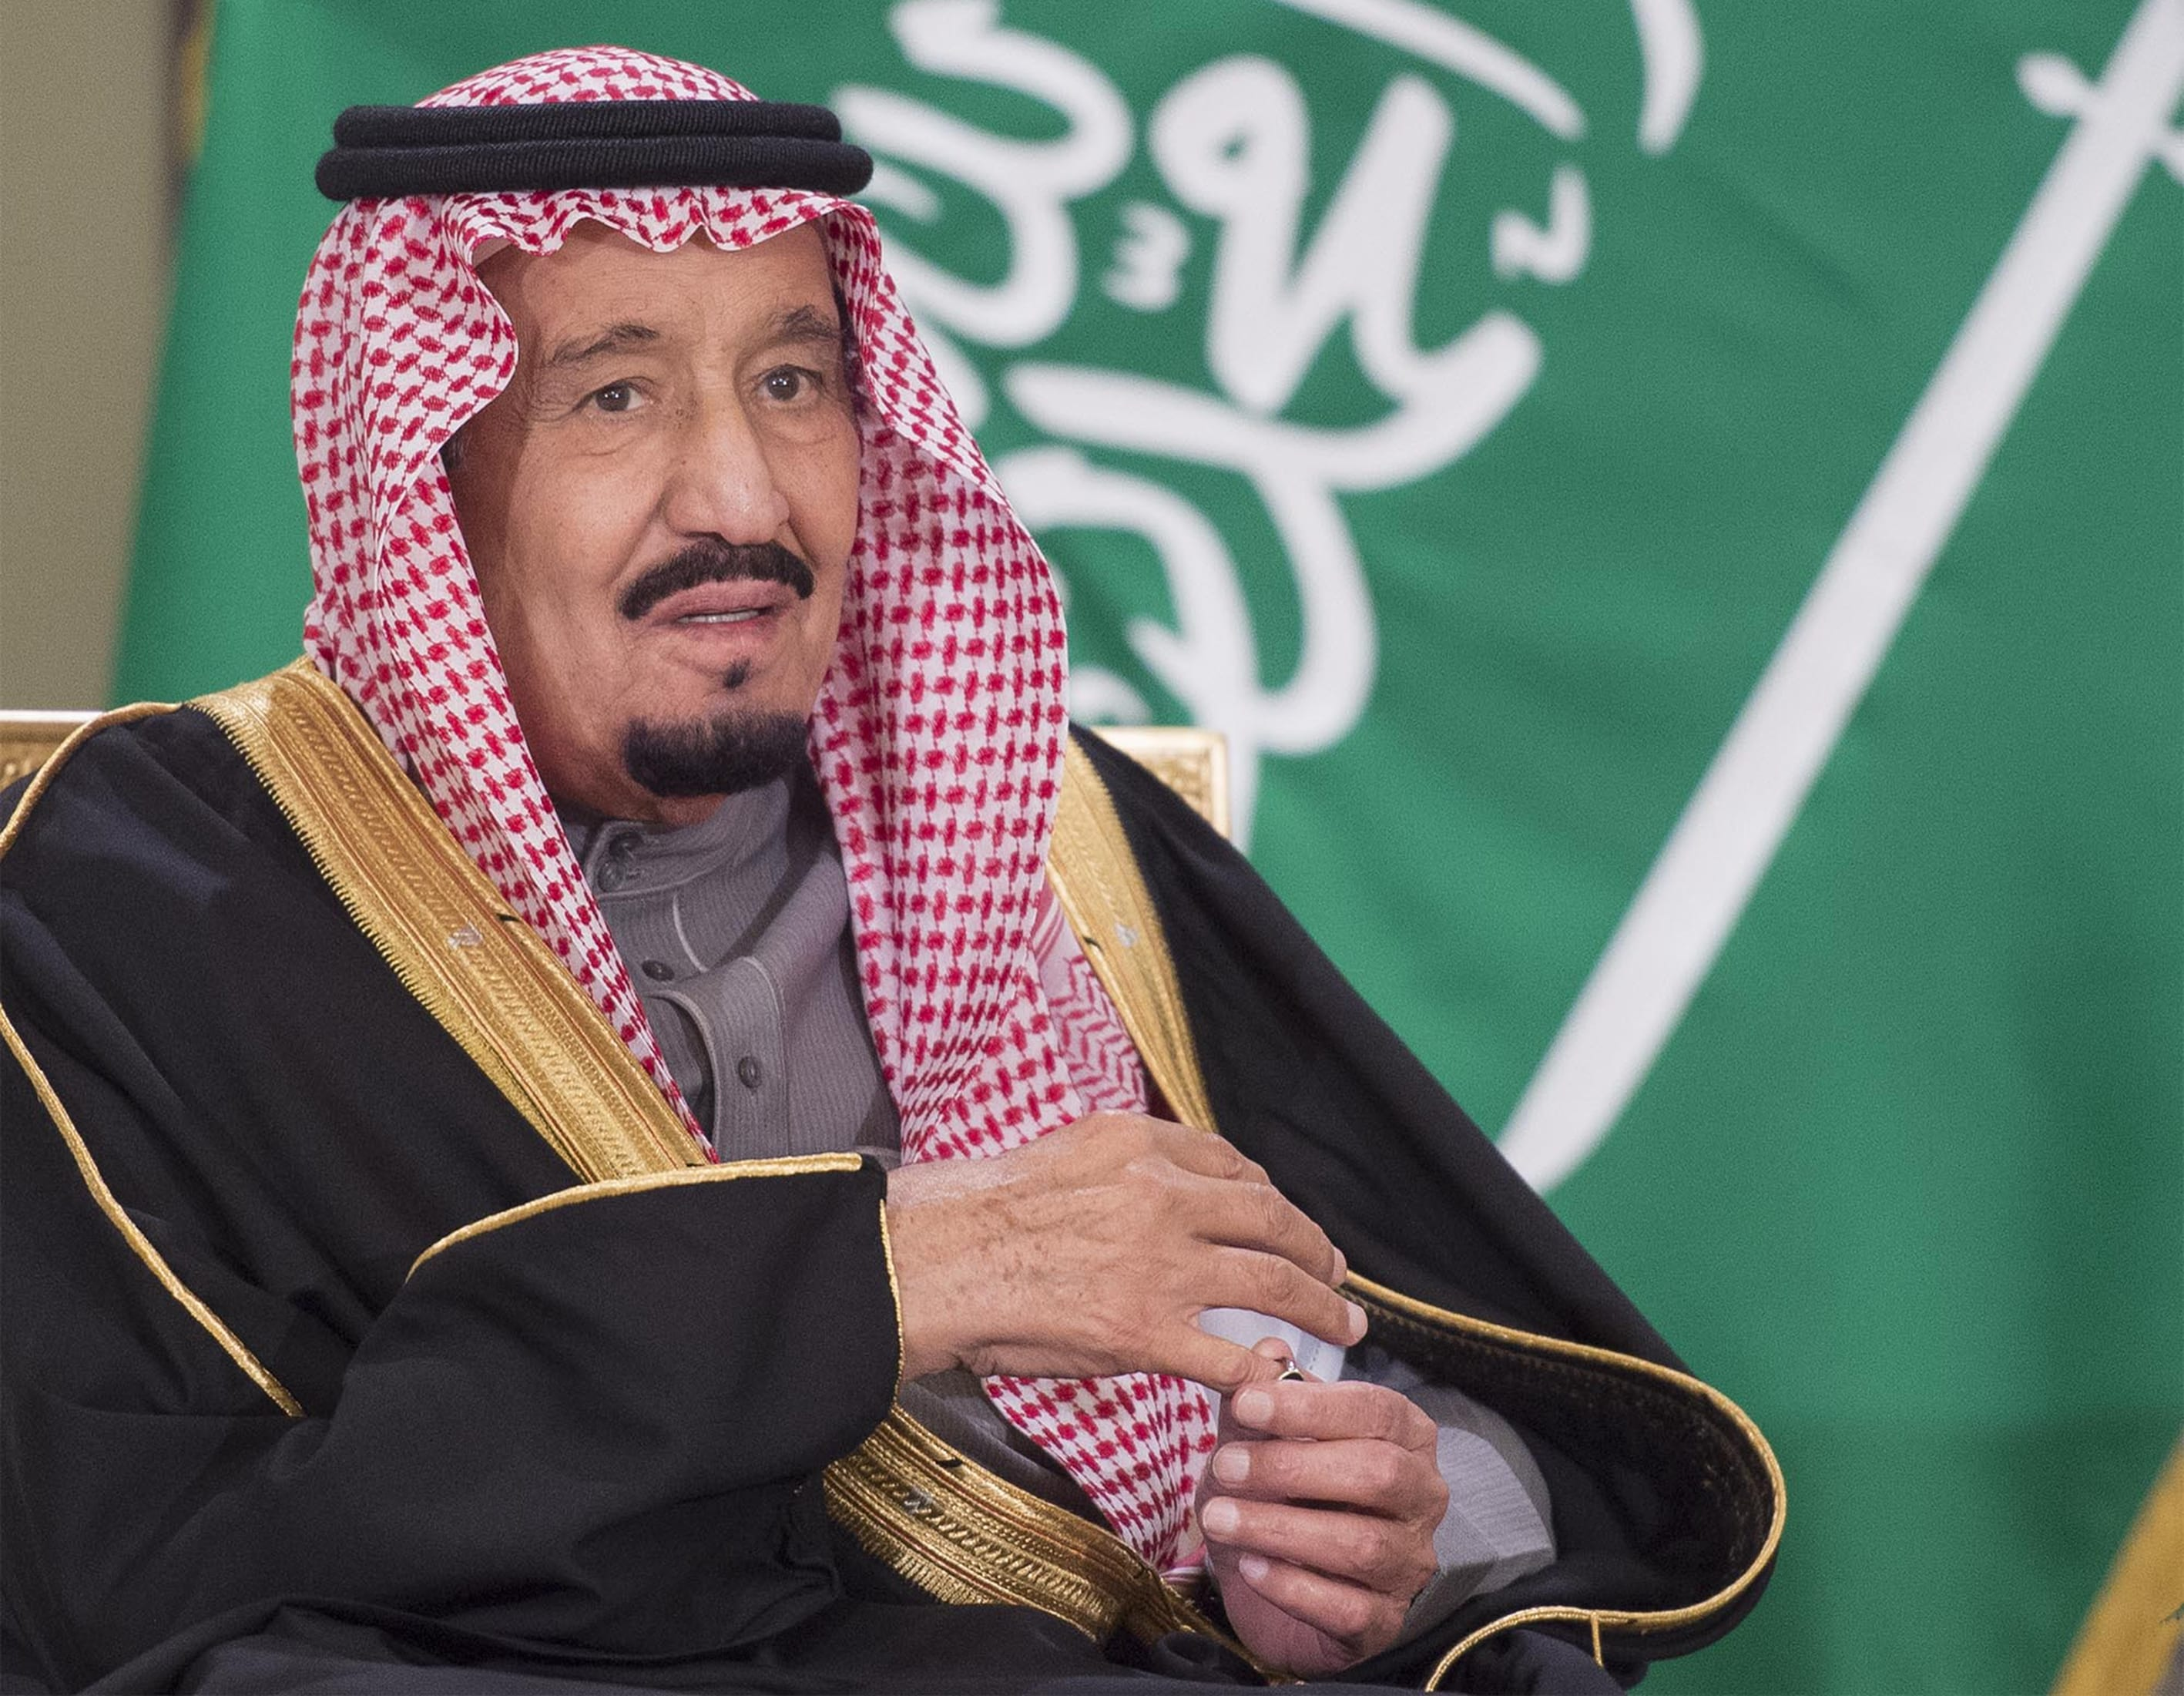 Forum on this topic: King Salman reportedly tightening grip on Crown , king-salman-reportedly-tightening-grip-on-crown/